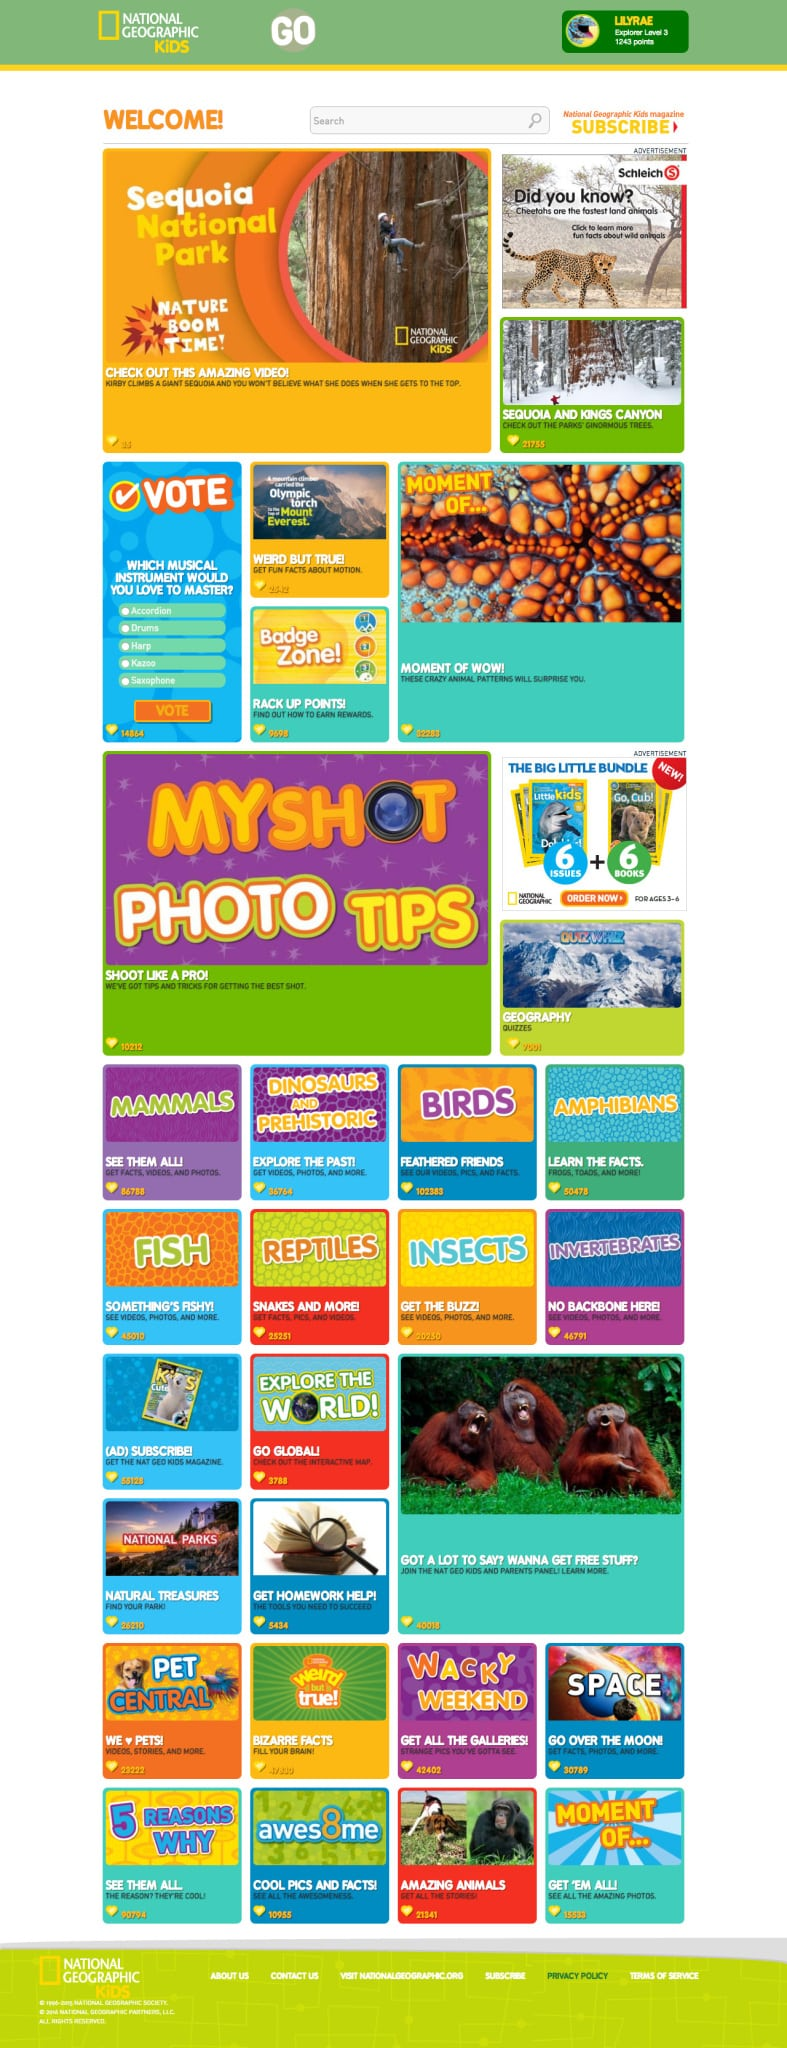 NATIONAL GEOGRAPHIC KIDS_Consumer_Website